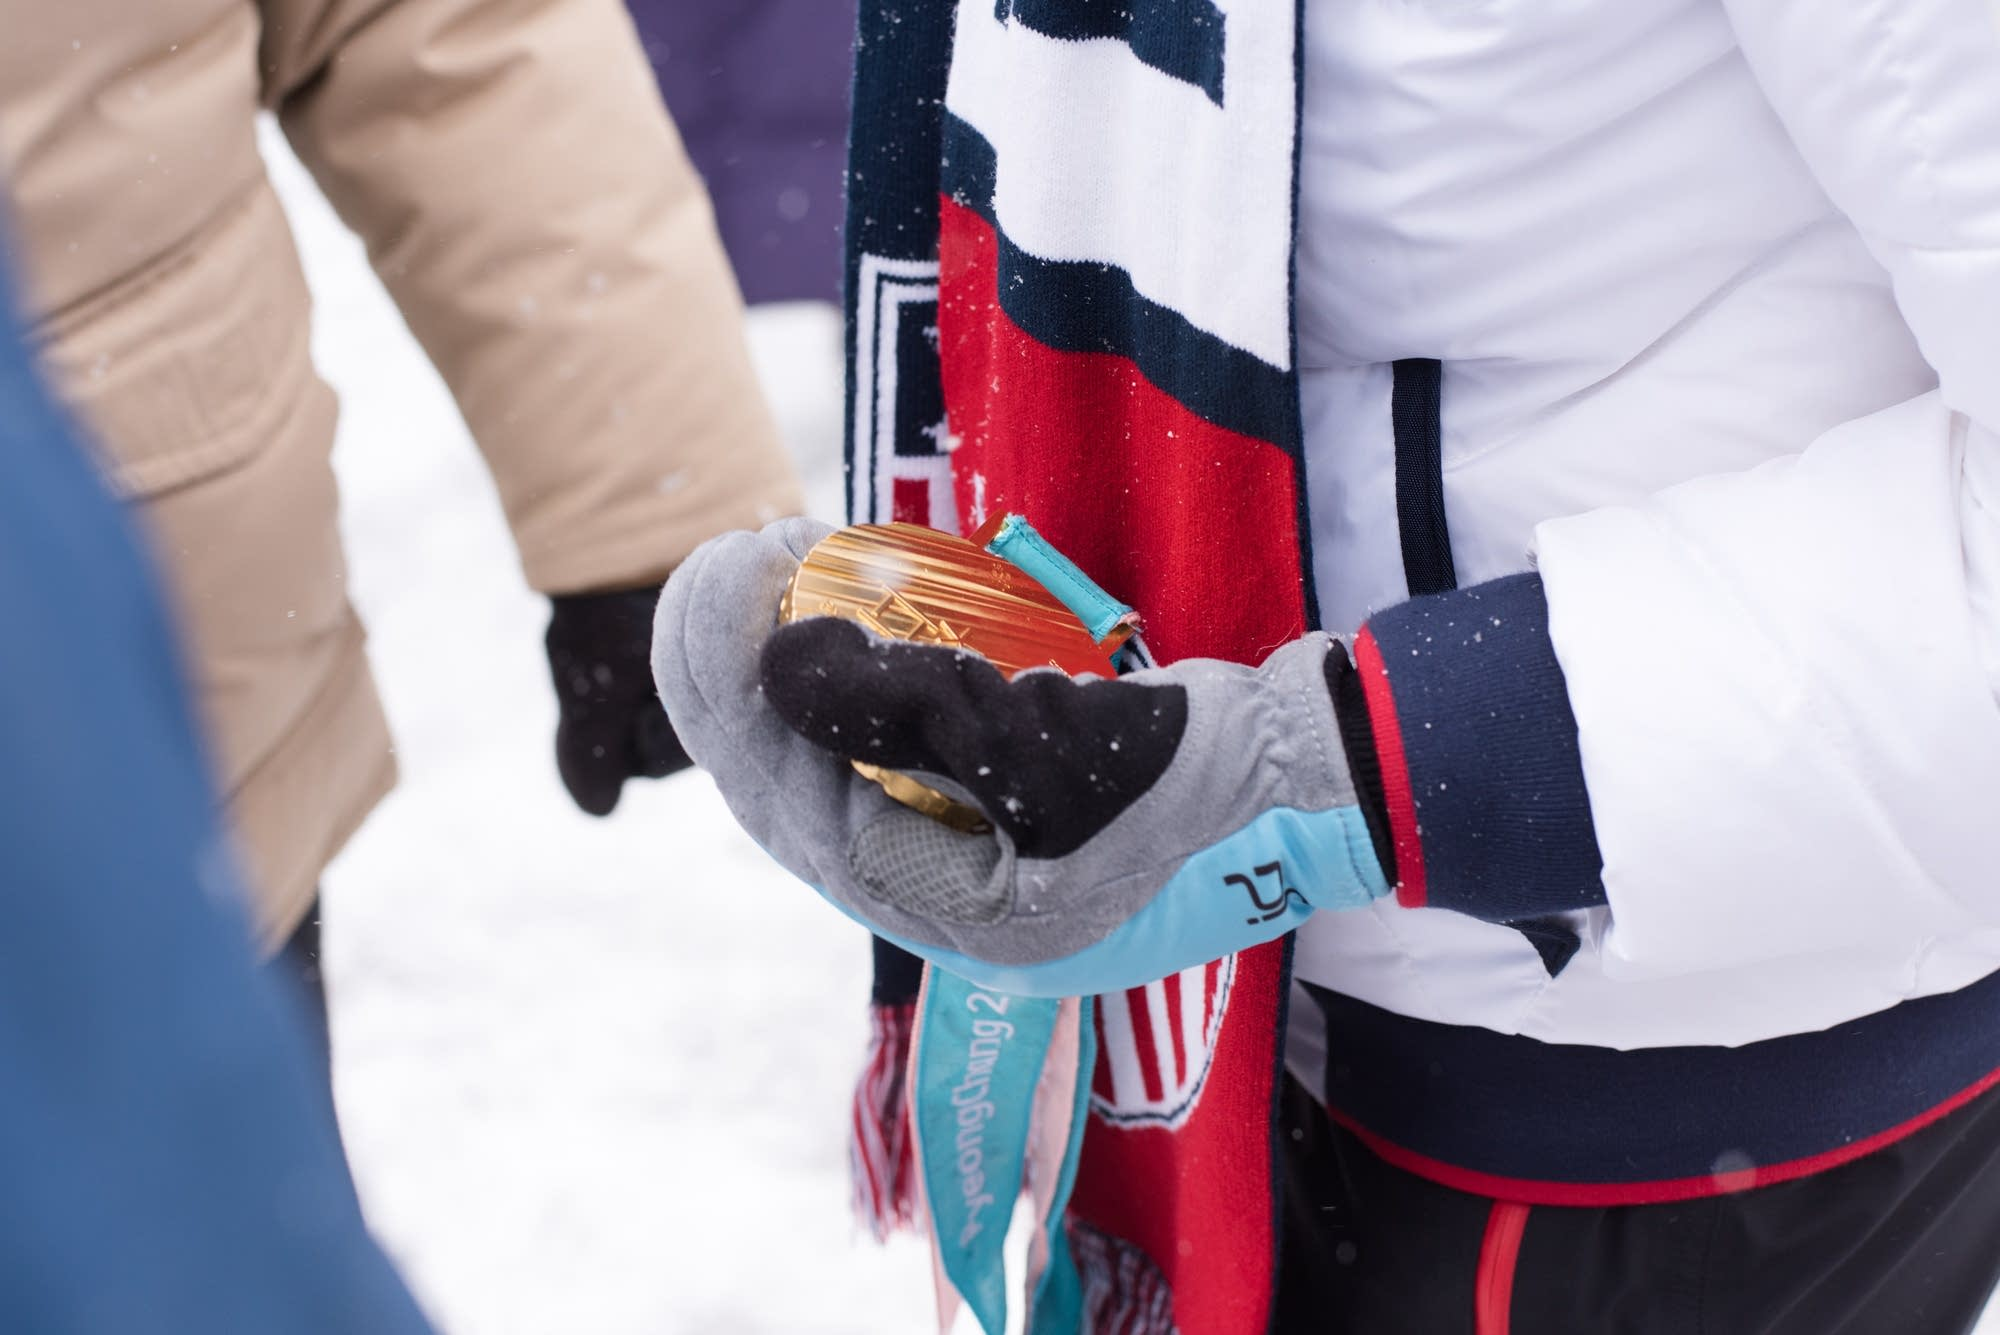 Jessie Diggins holds her gold medal before the start of the parade.